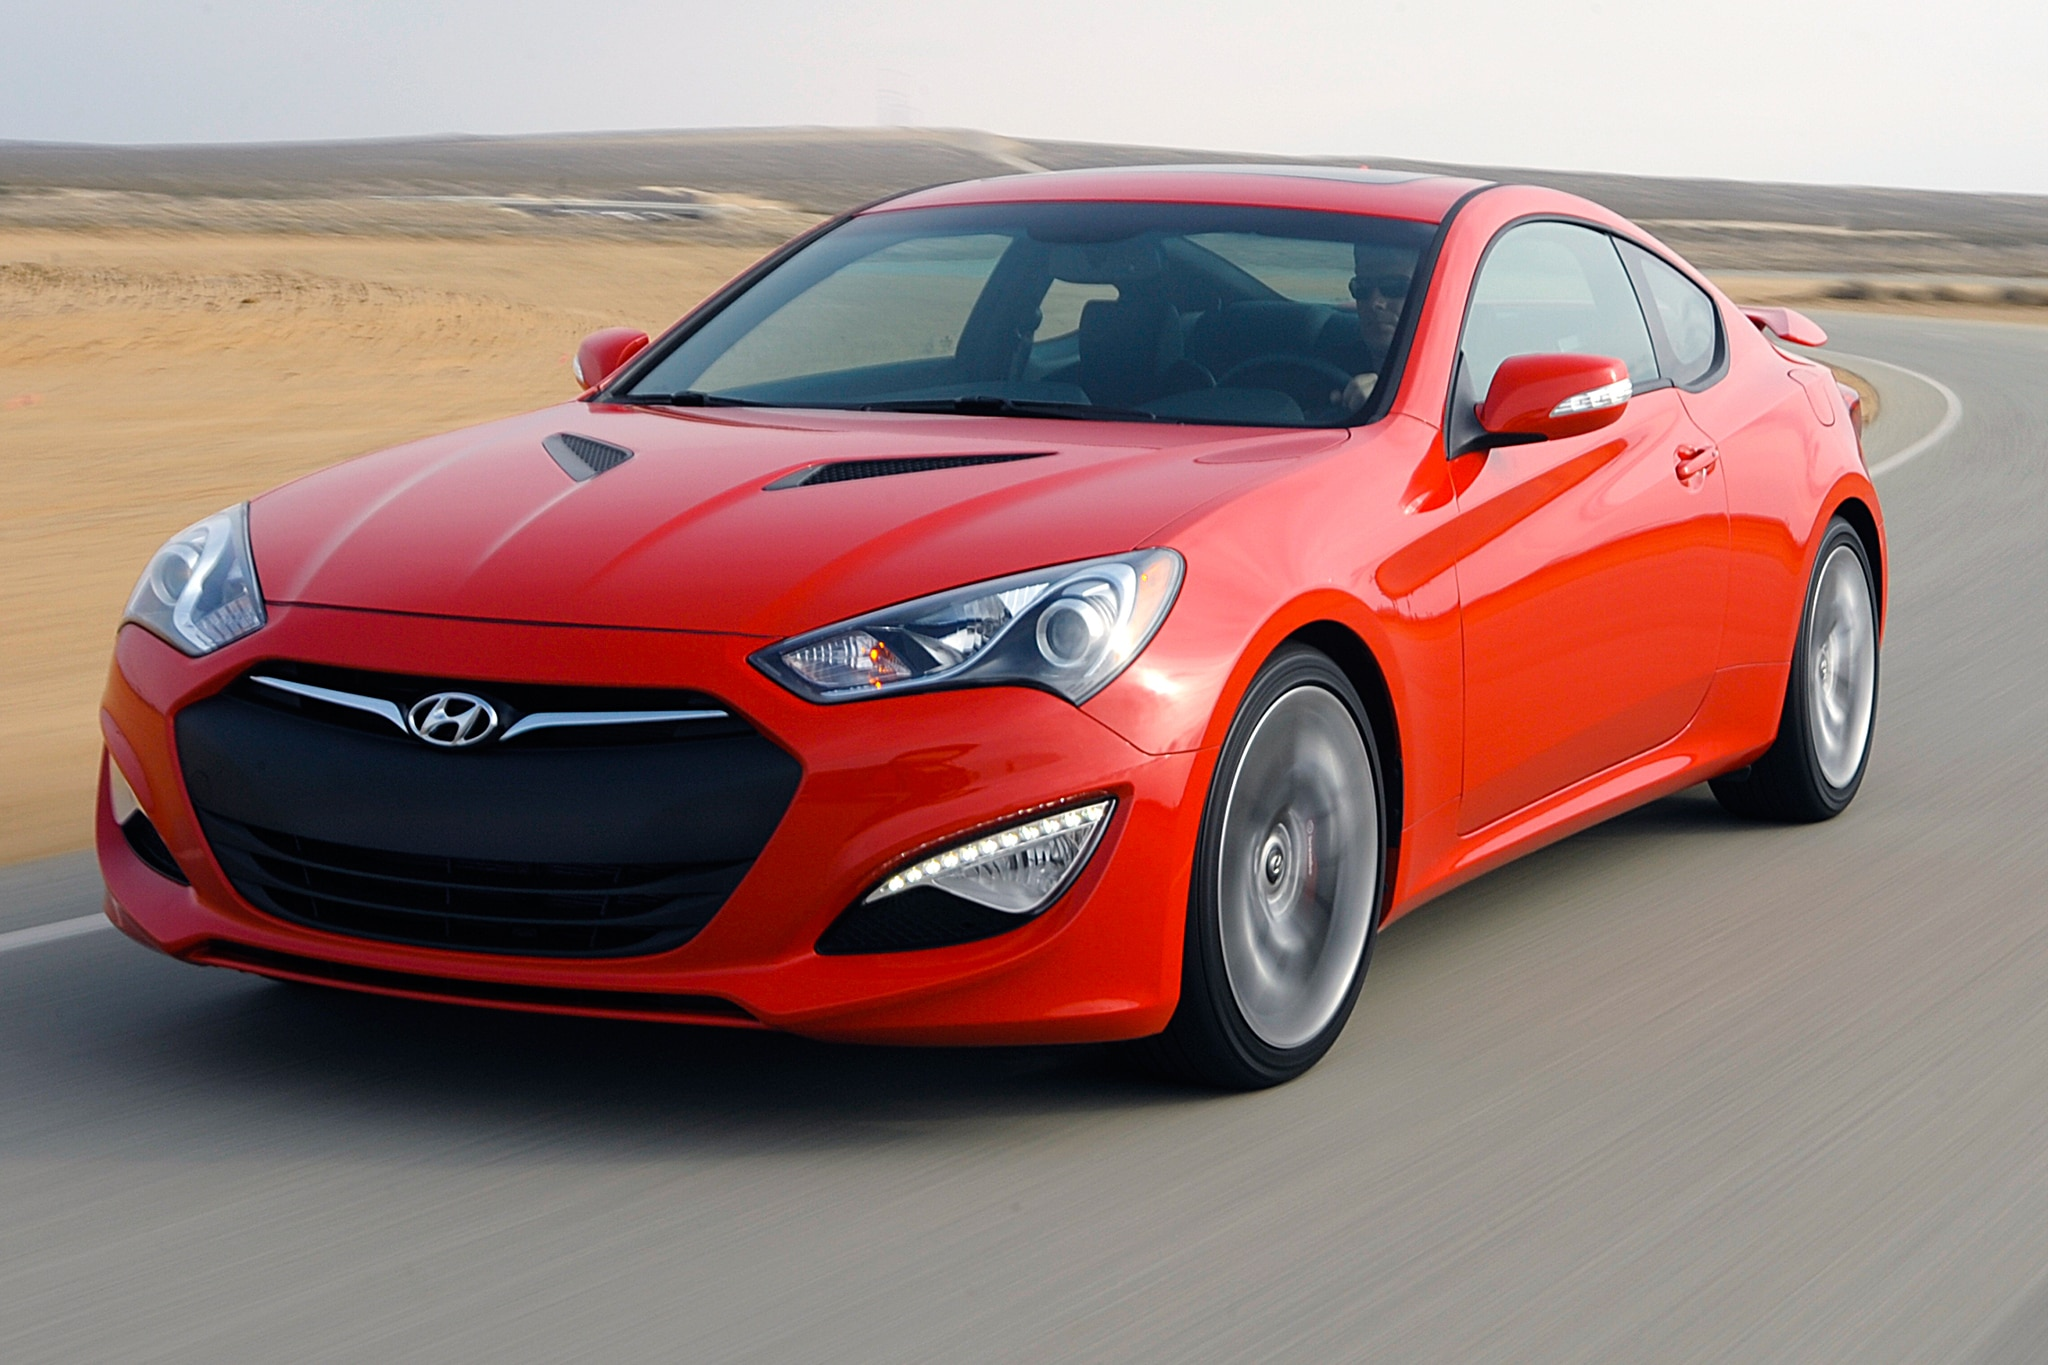 2014 Hyundai Genesis Coupe Priced at $27,245 - Automobile Magazine